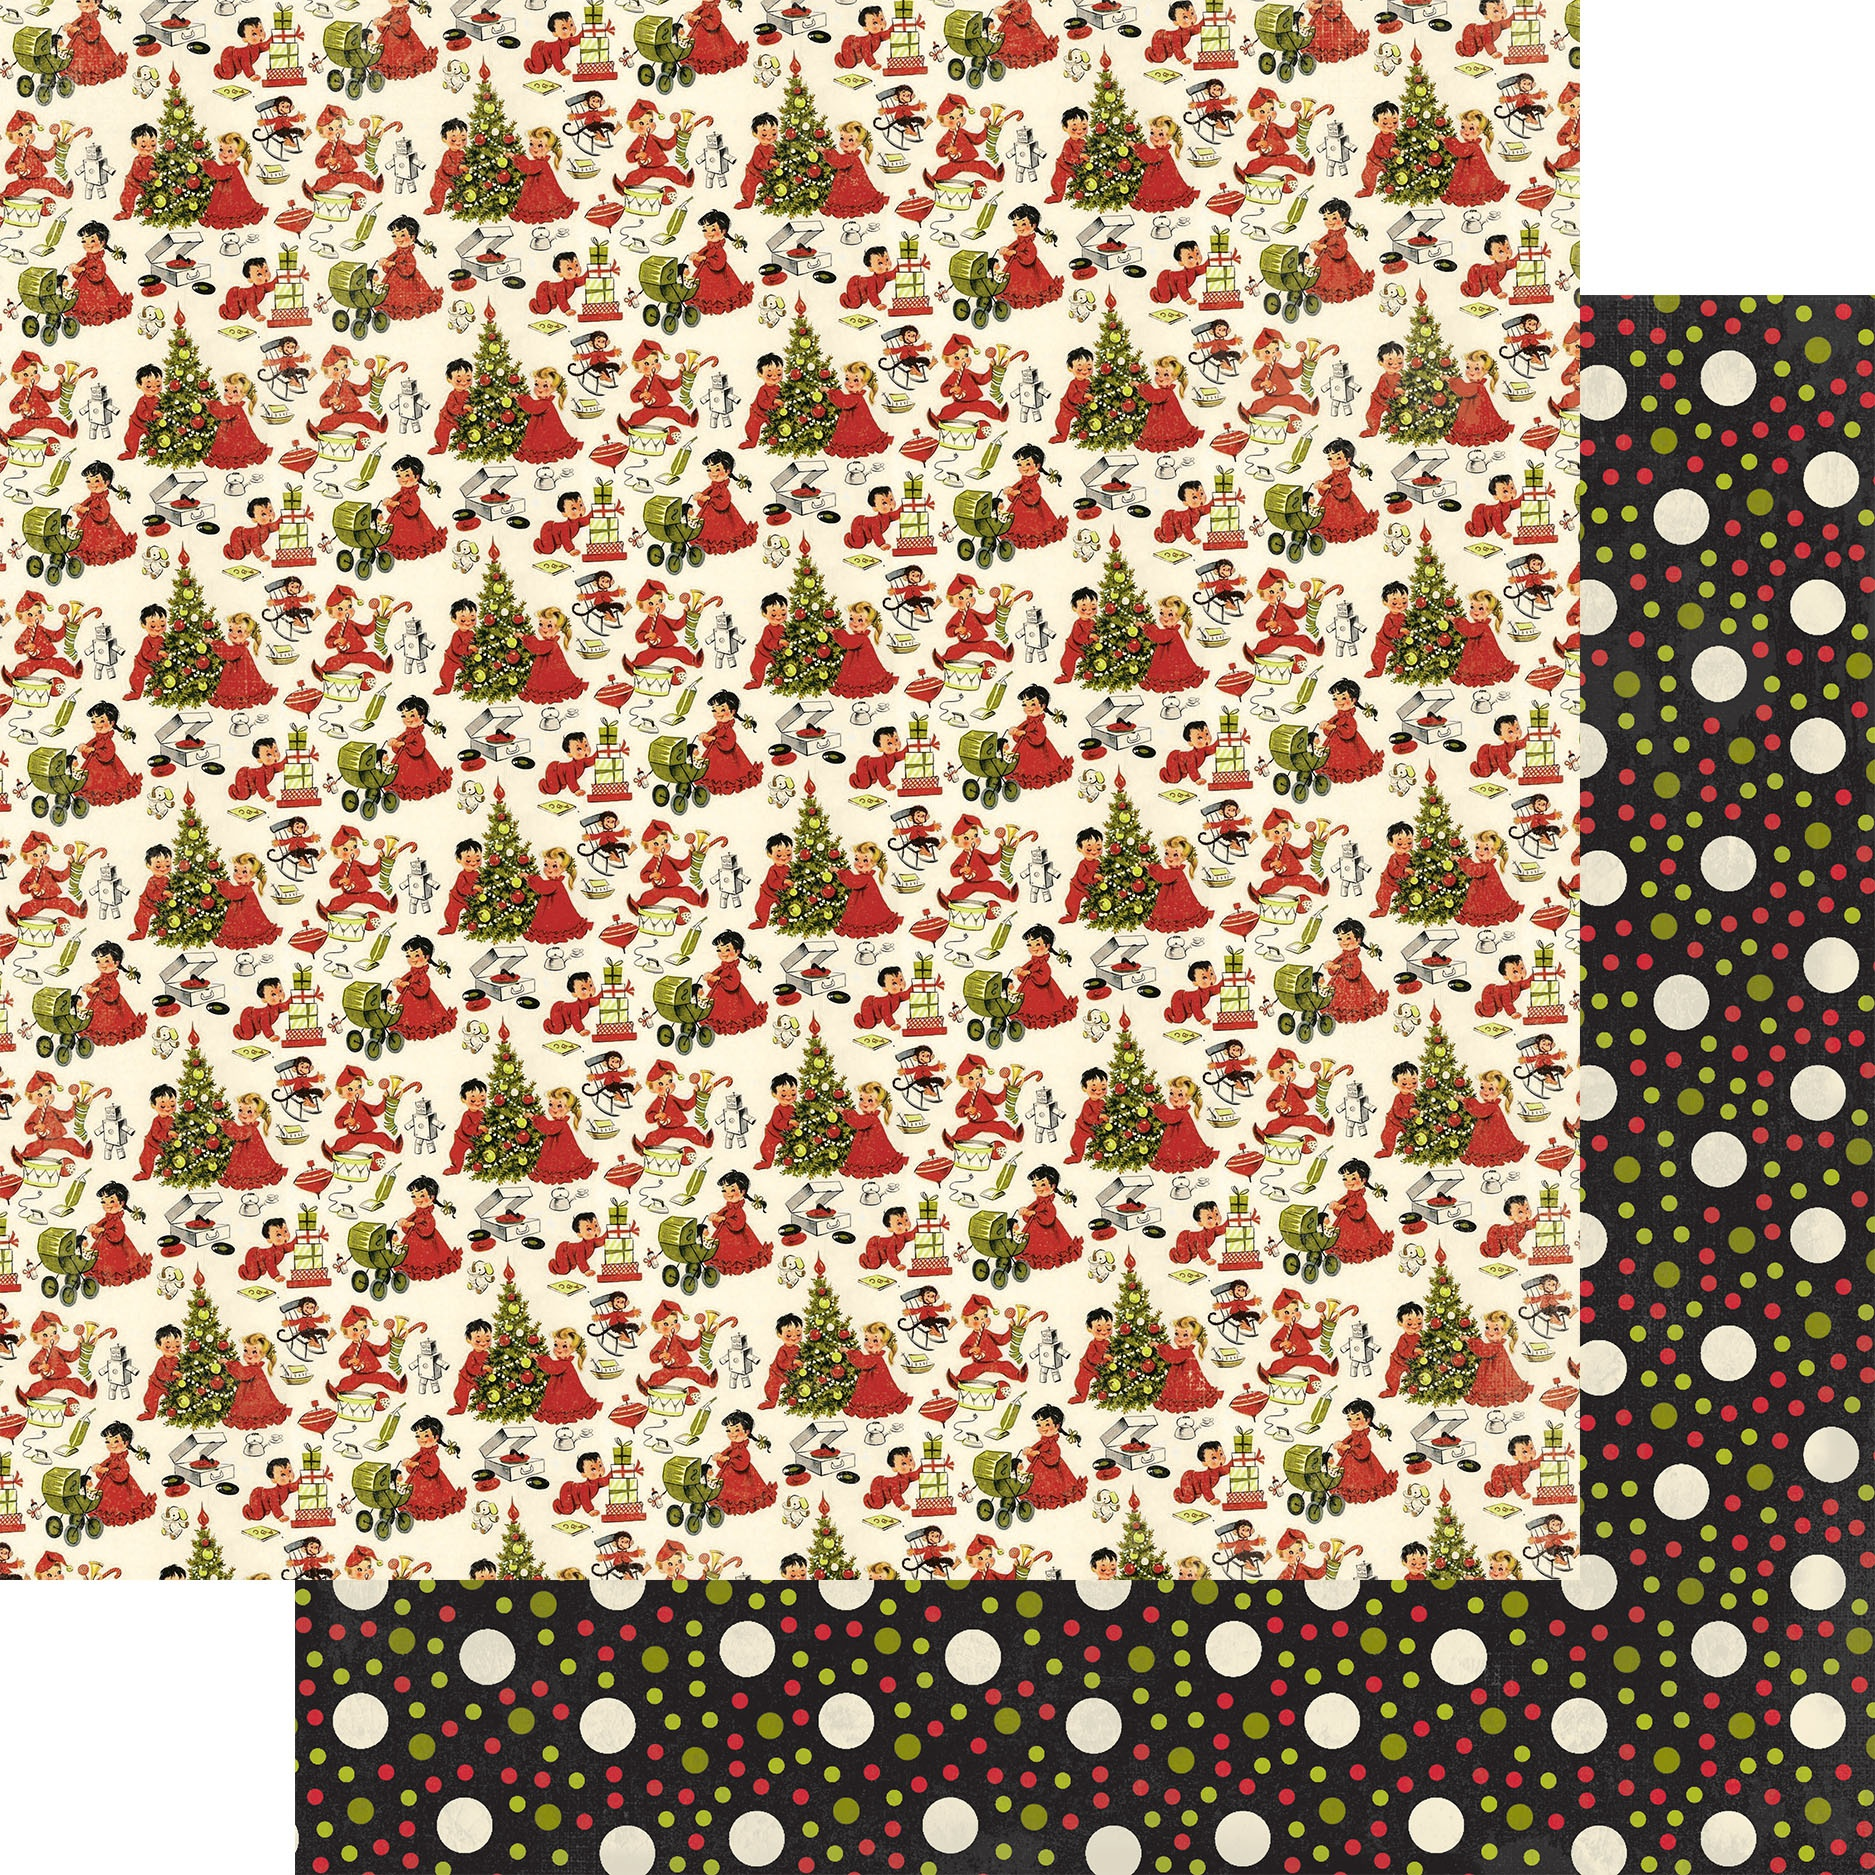 A Magical Christmas Cardstock - All Styles